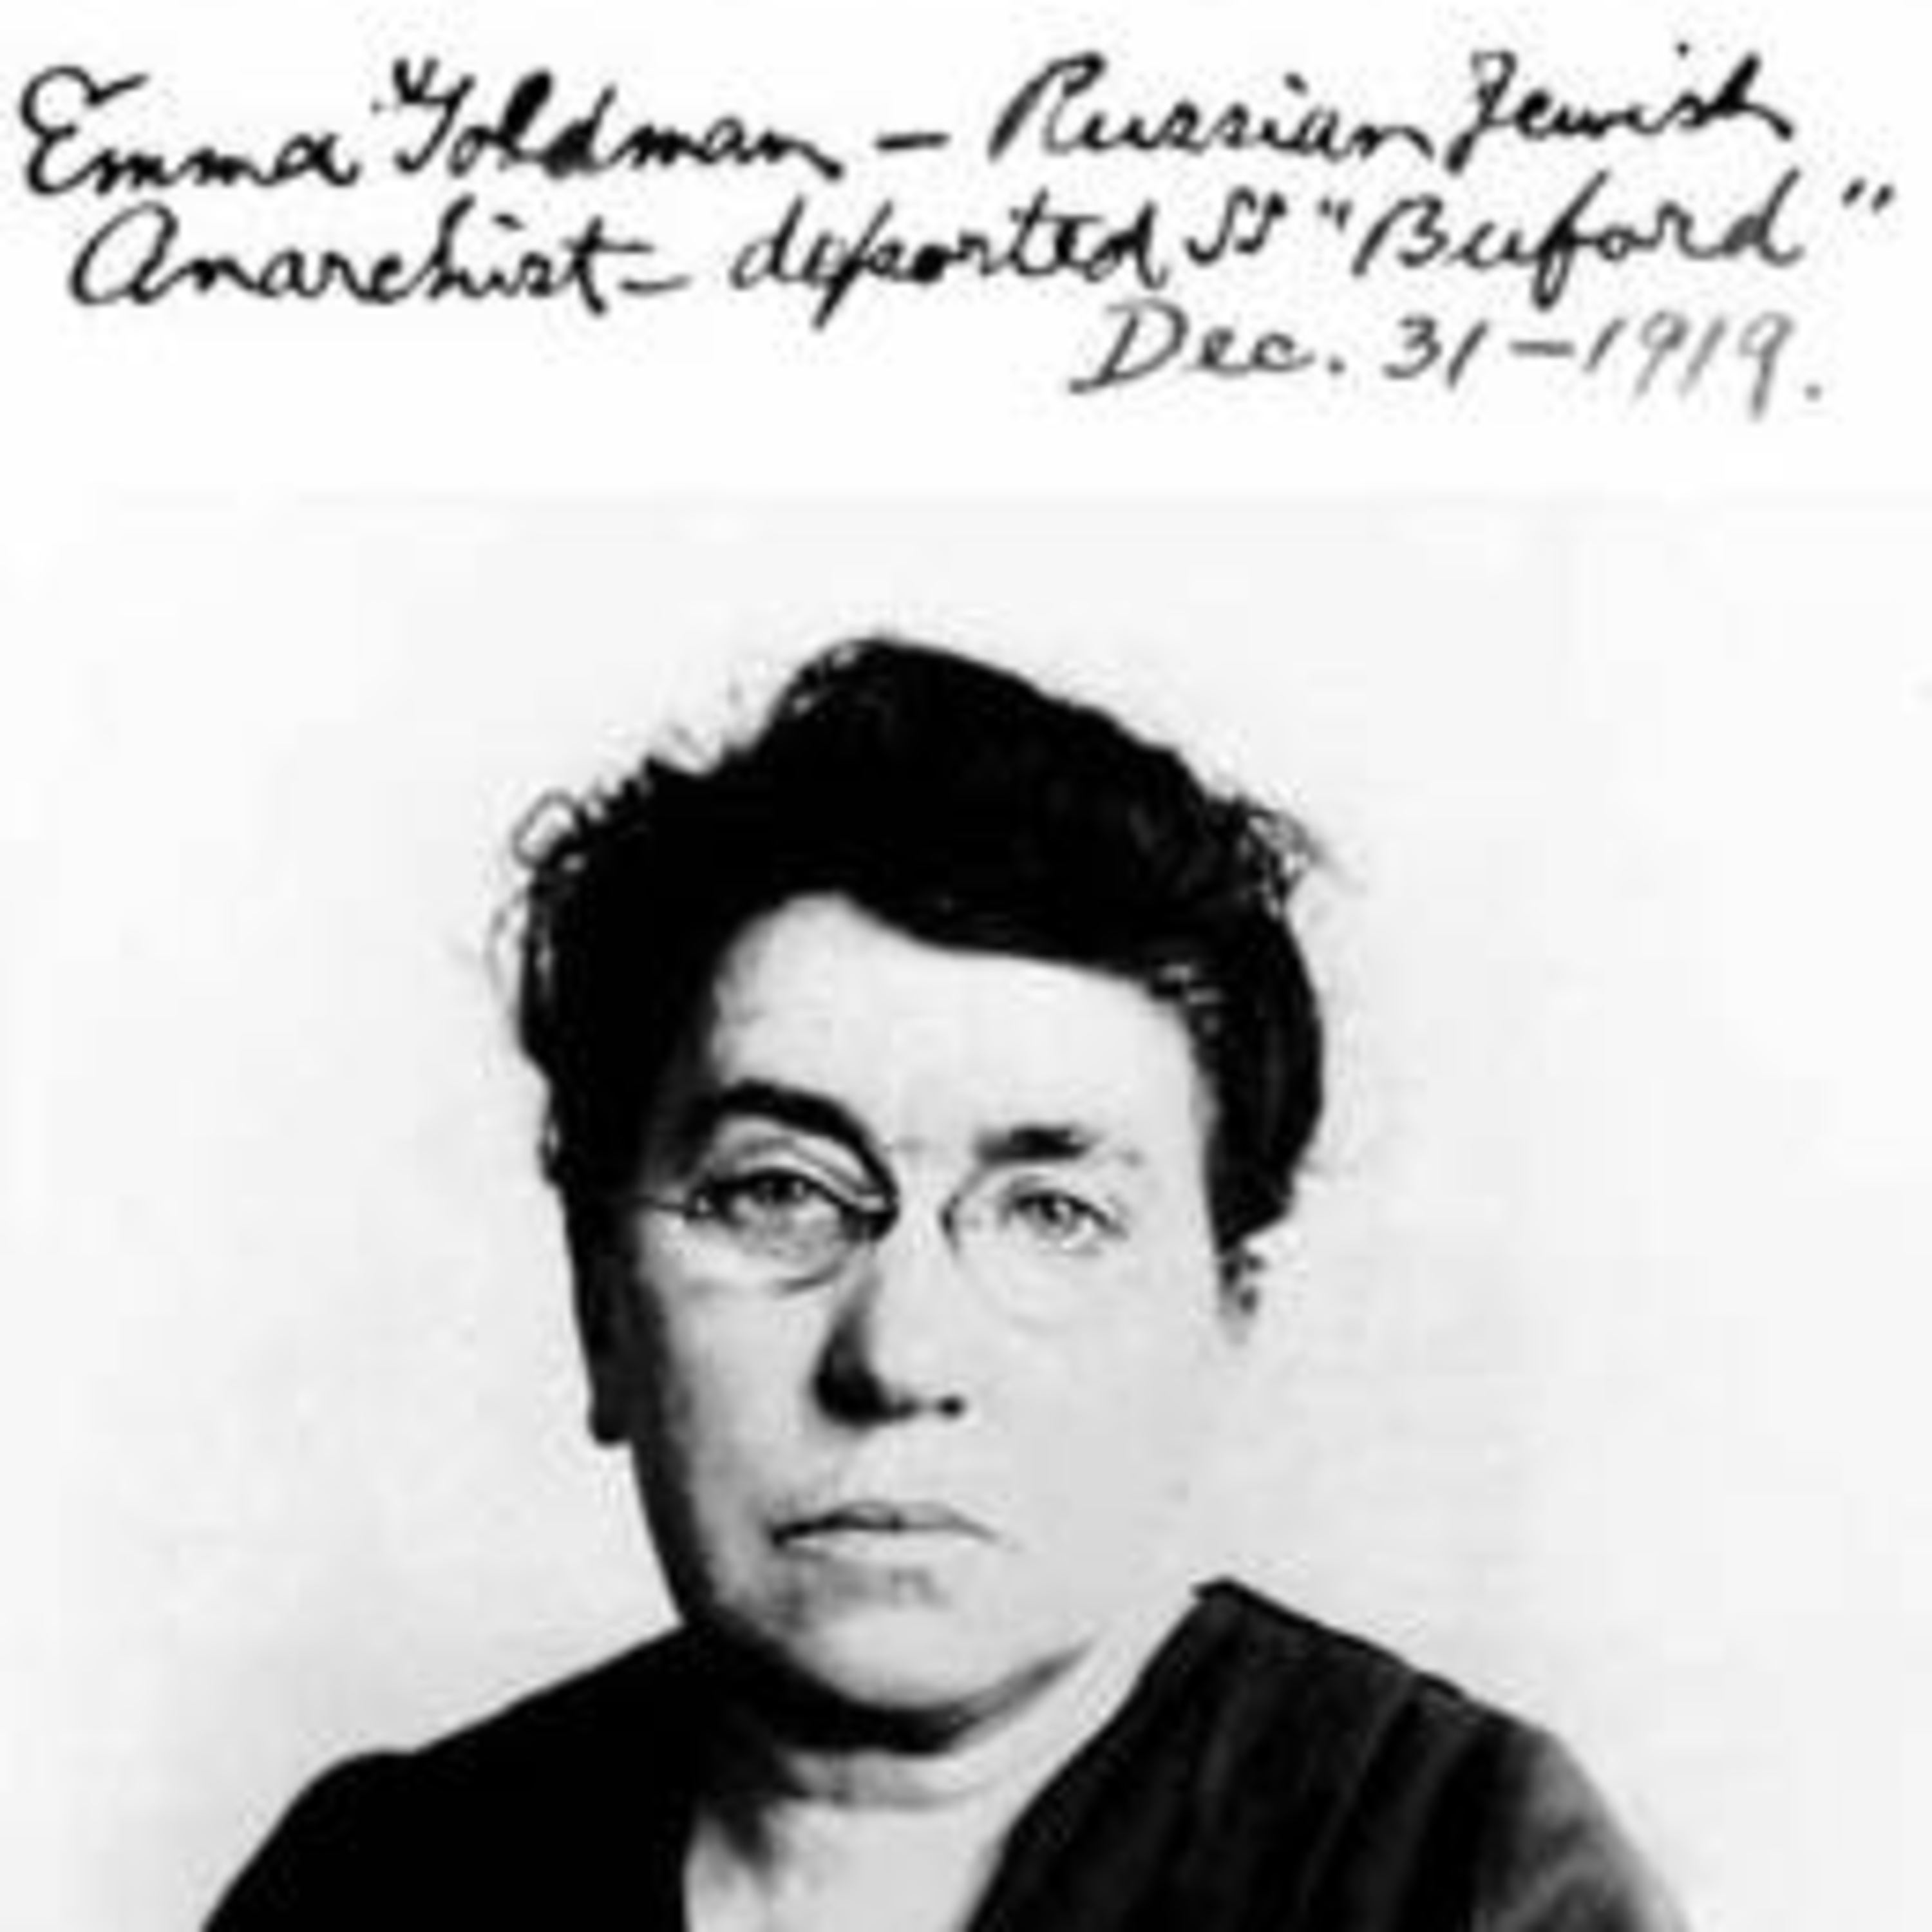 Episode 10: Interview with Frank Jacob: Emma Goldman and the Russian Revolution